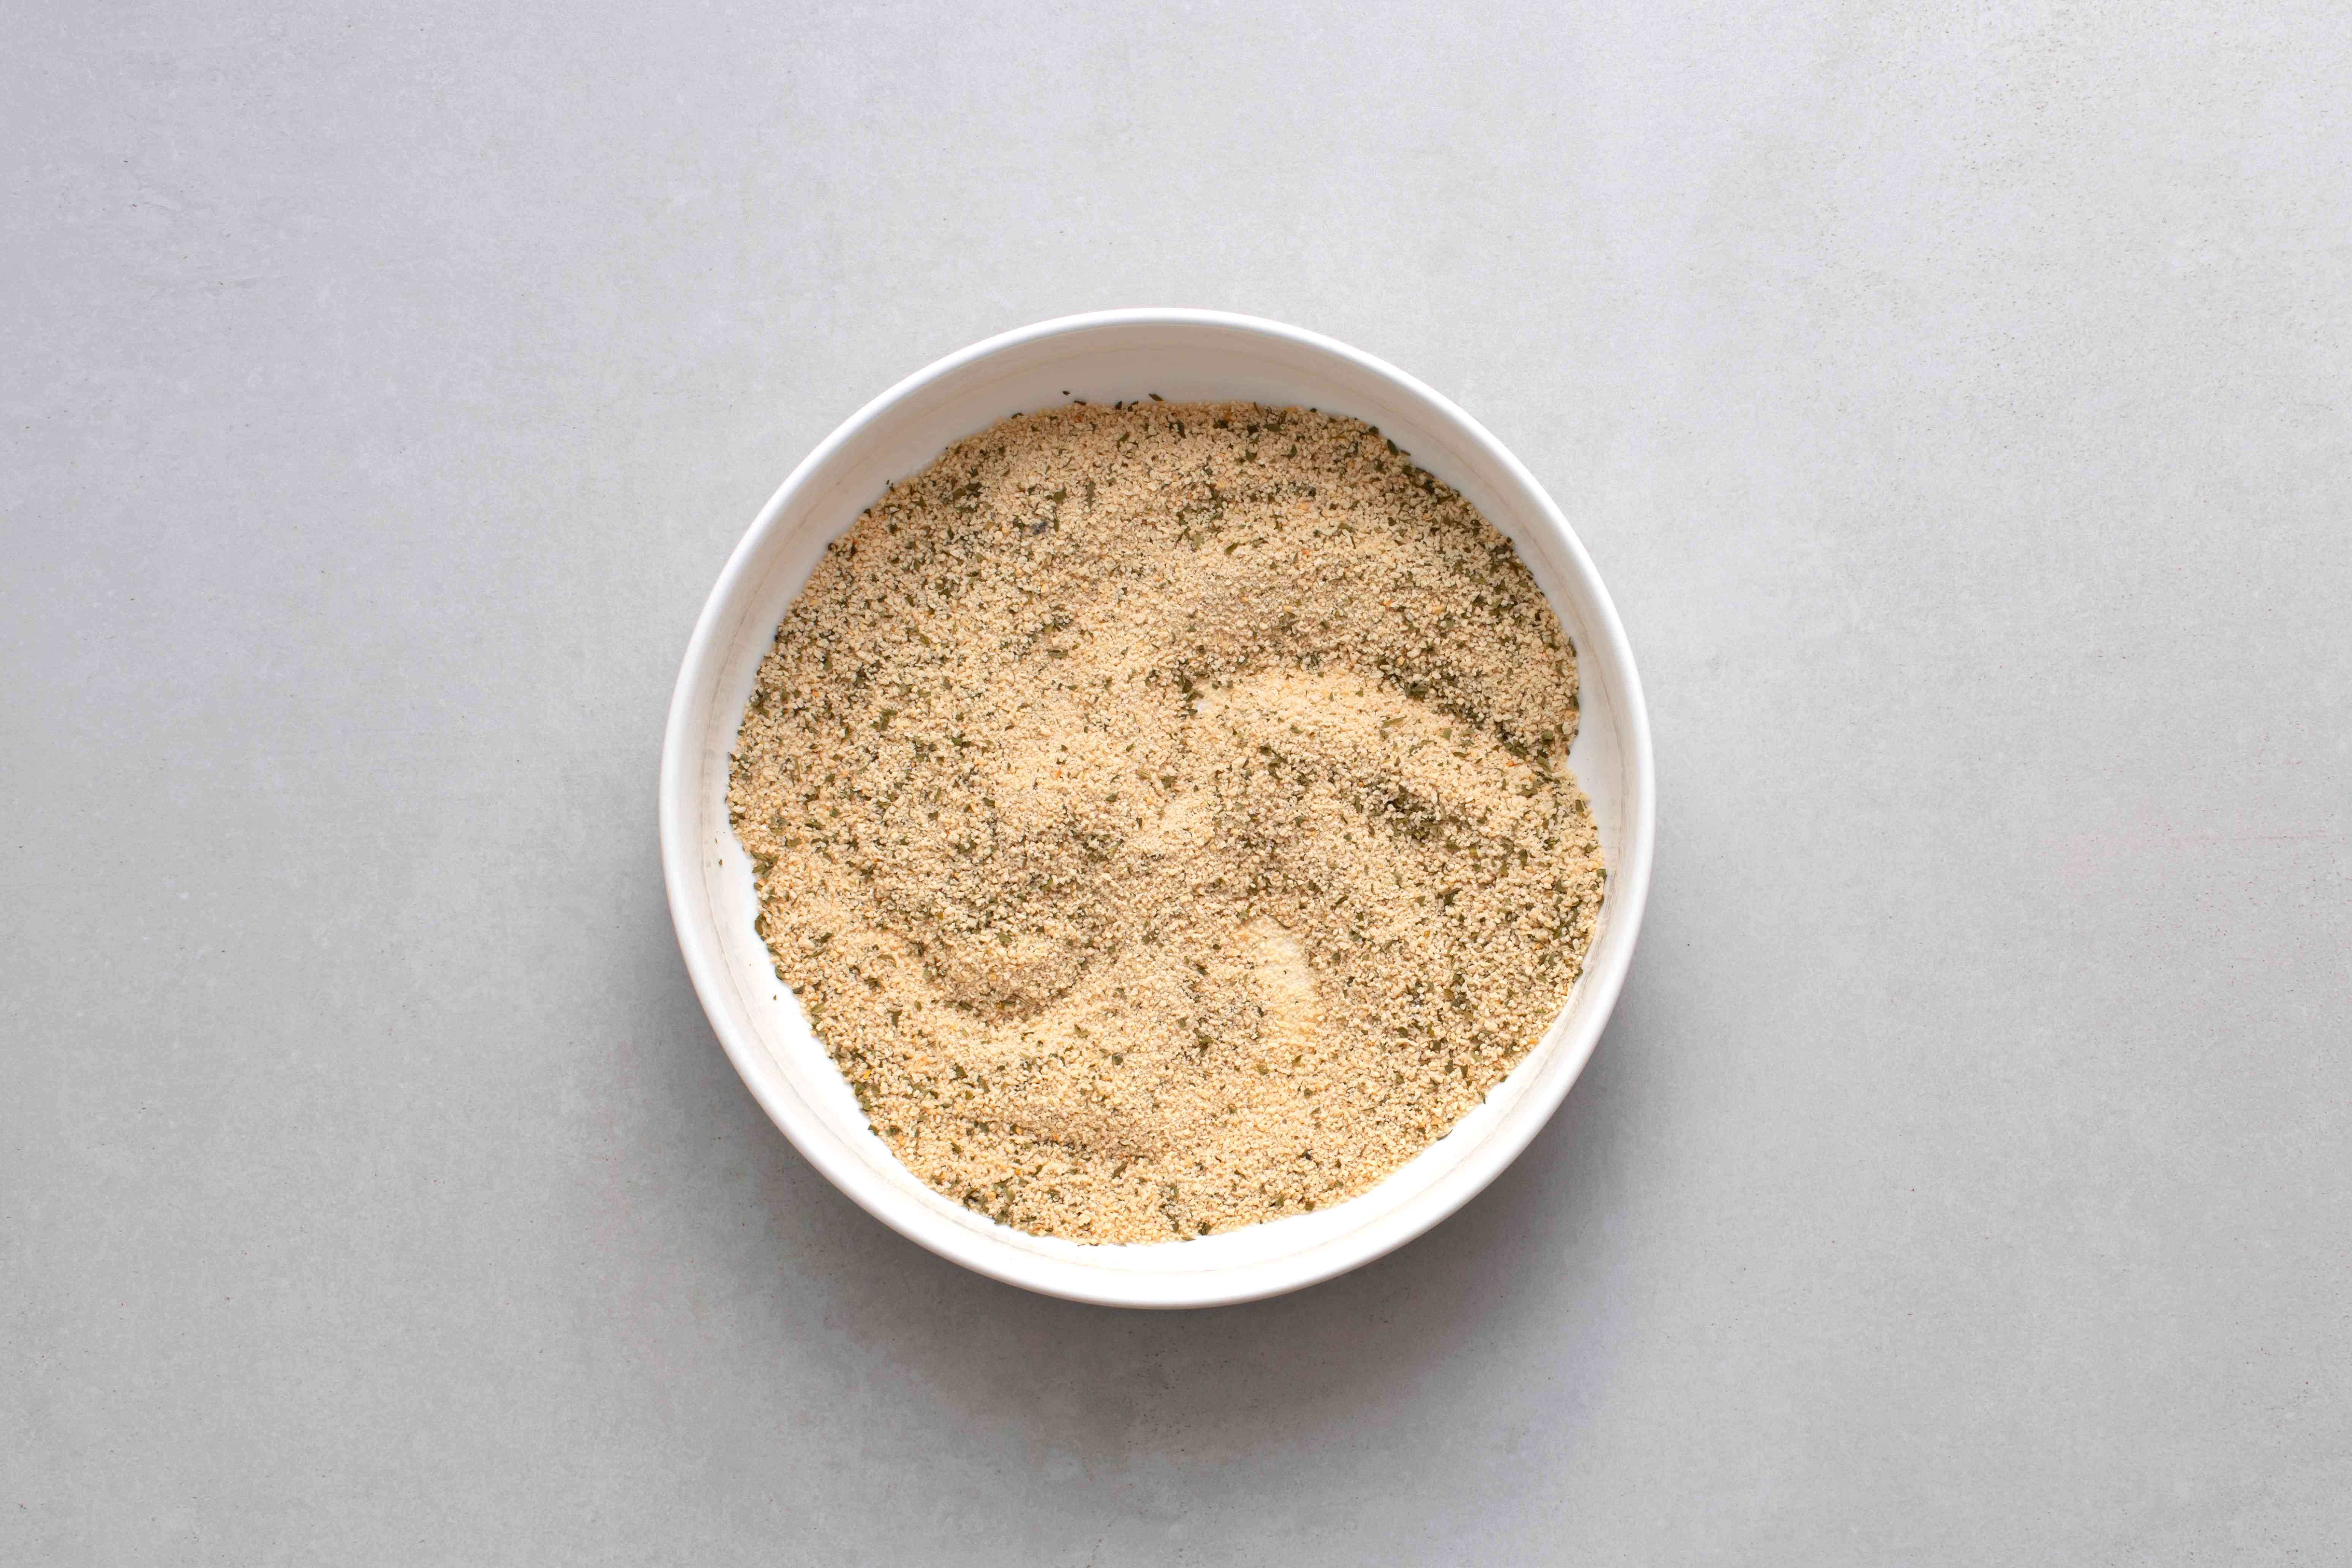 Combine the breadcrumbs and parsley in a wide bowl